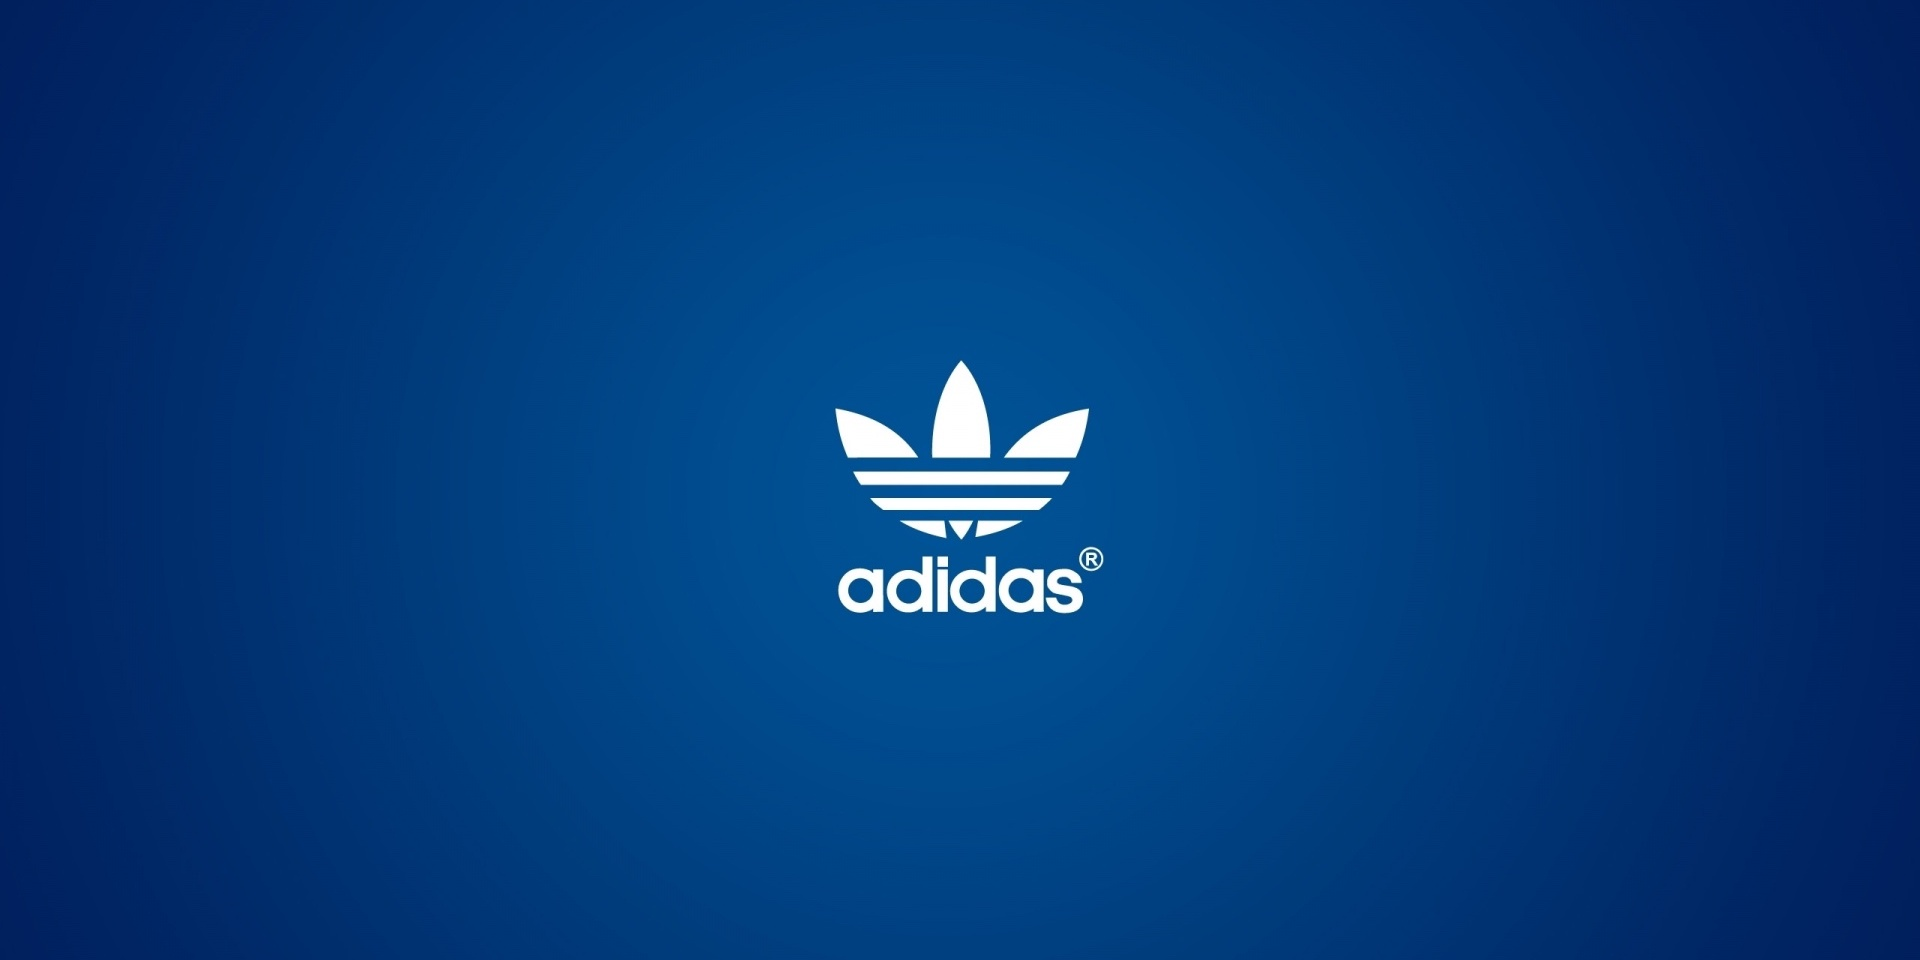 These gift cards are up to 20% off: adidas, Xbox, Nintendo, Kansas Steaks + many more